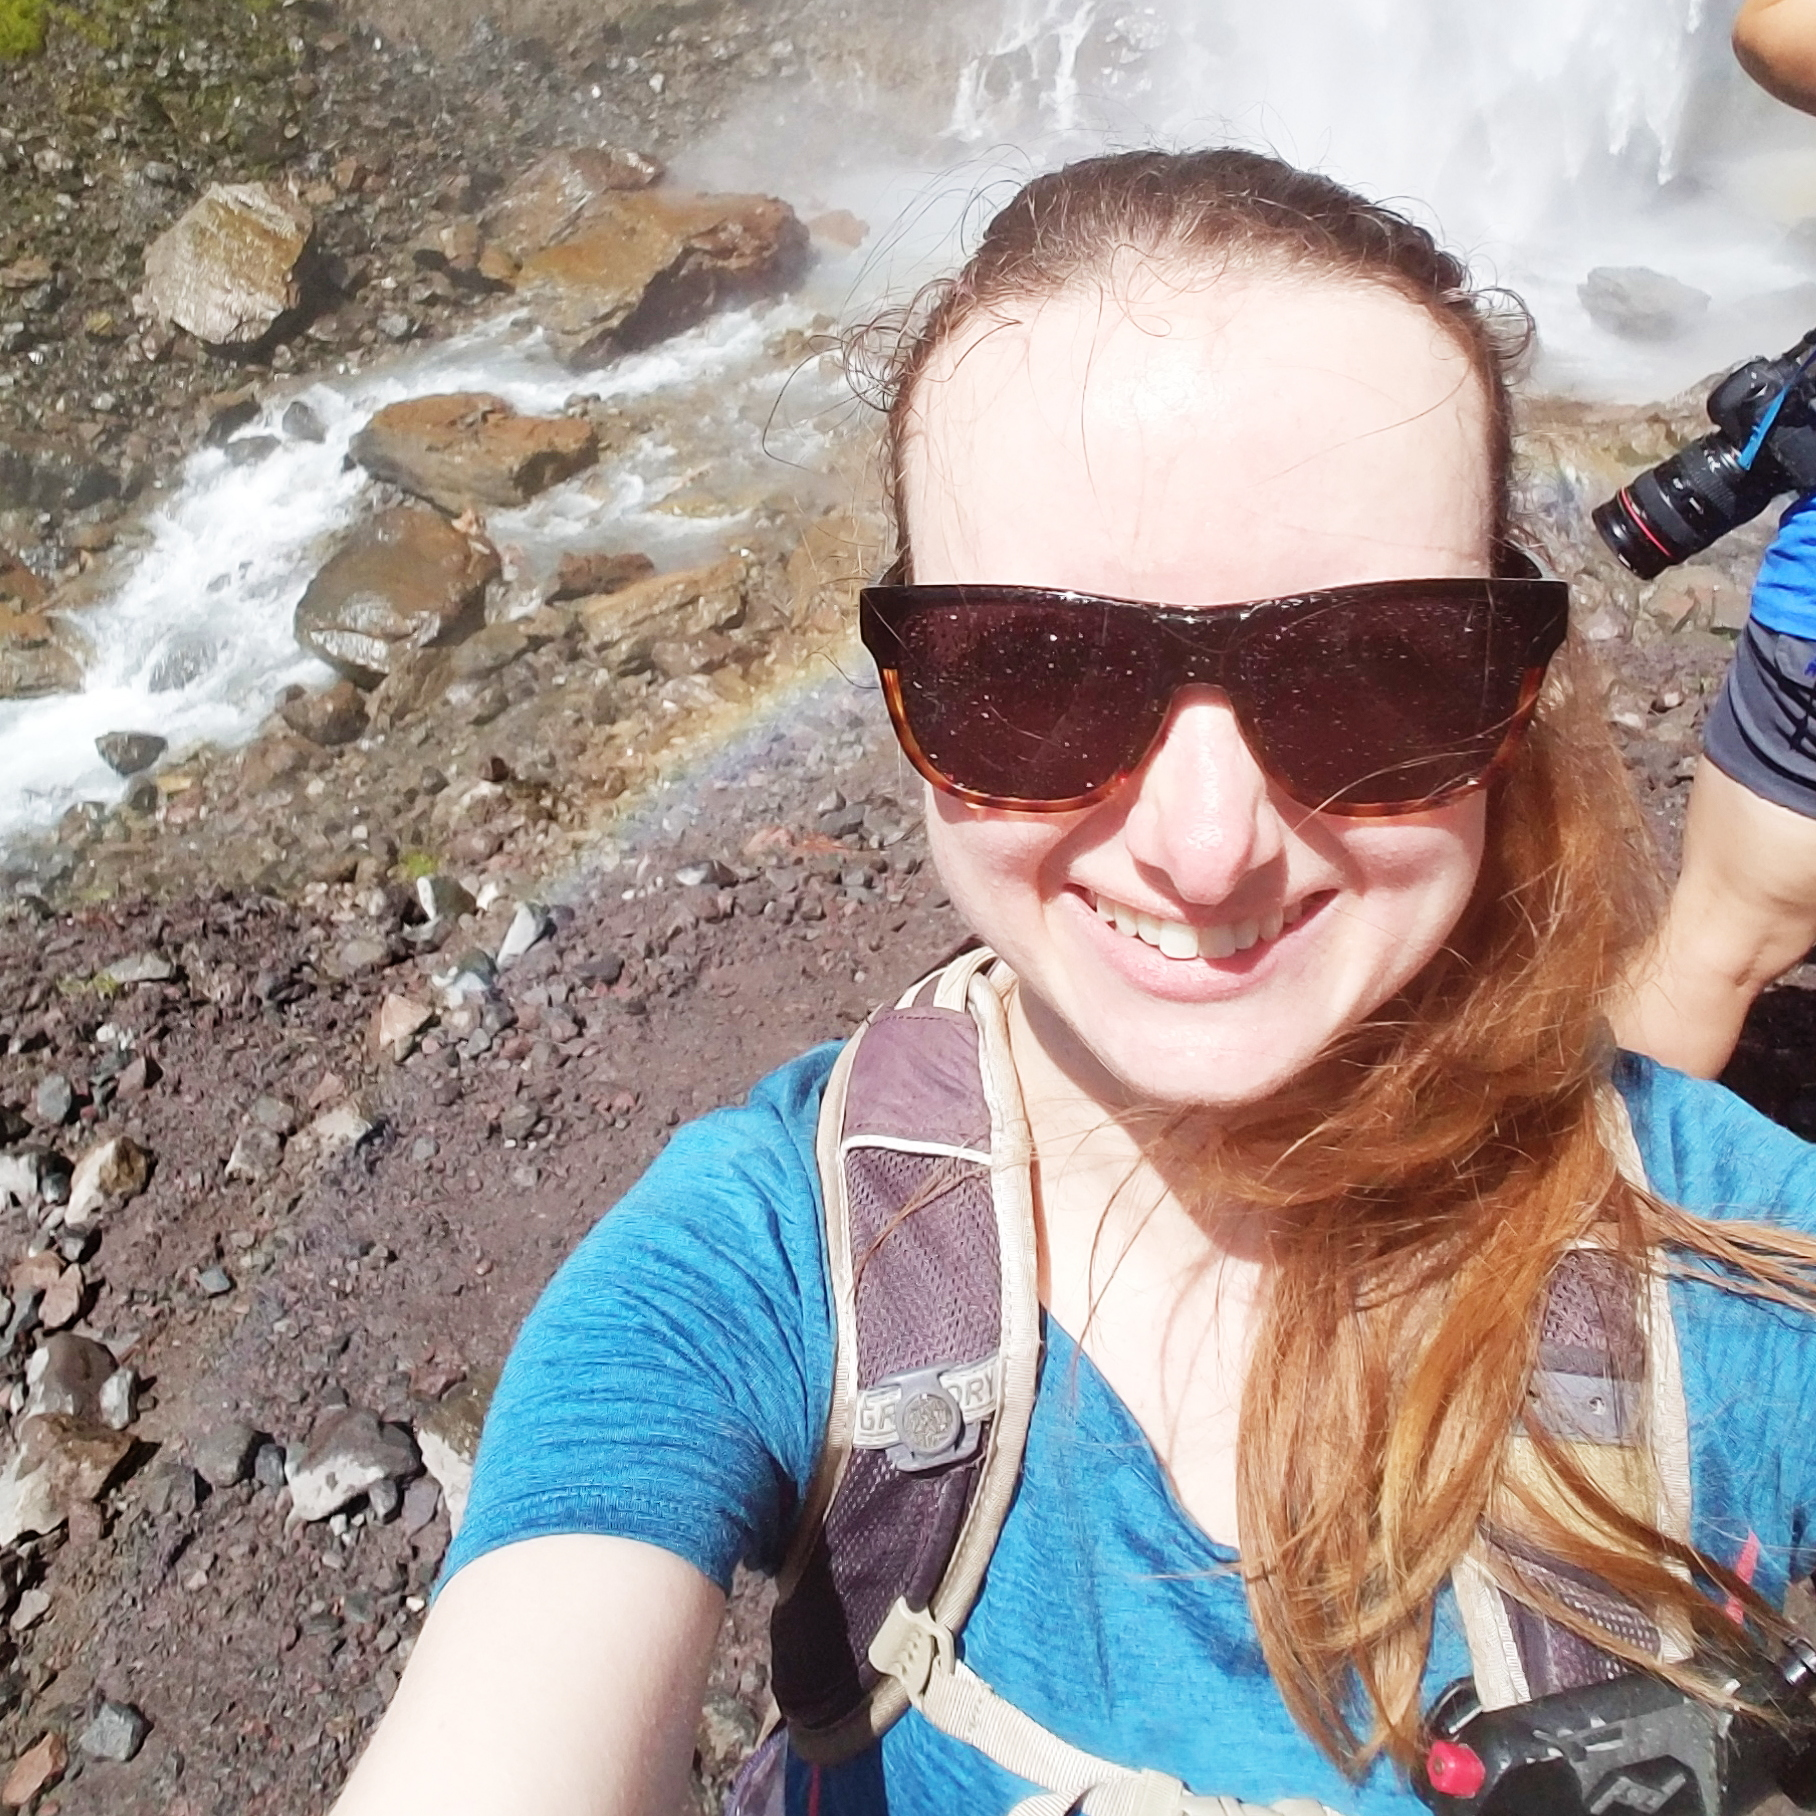 Tried to take a selfie with the falls. Failed miserably. Too happy to care!